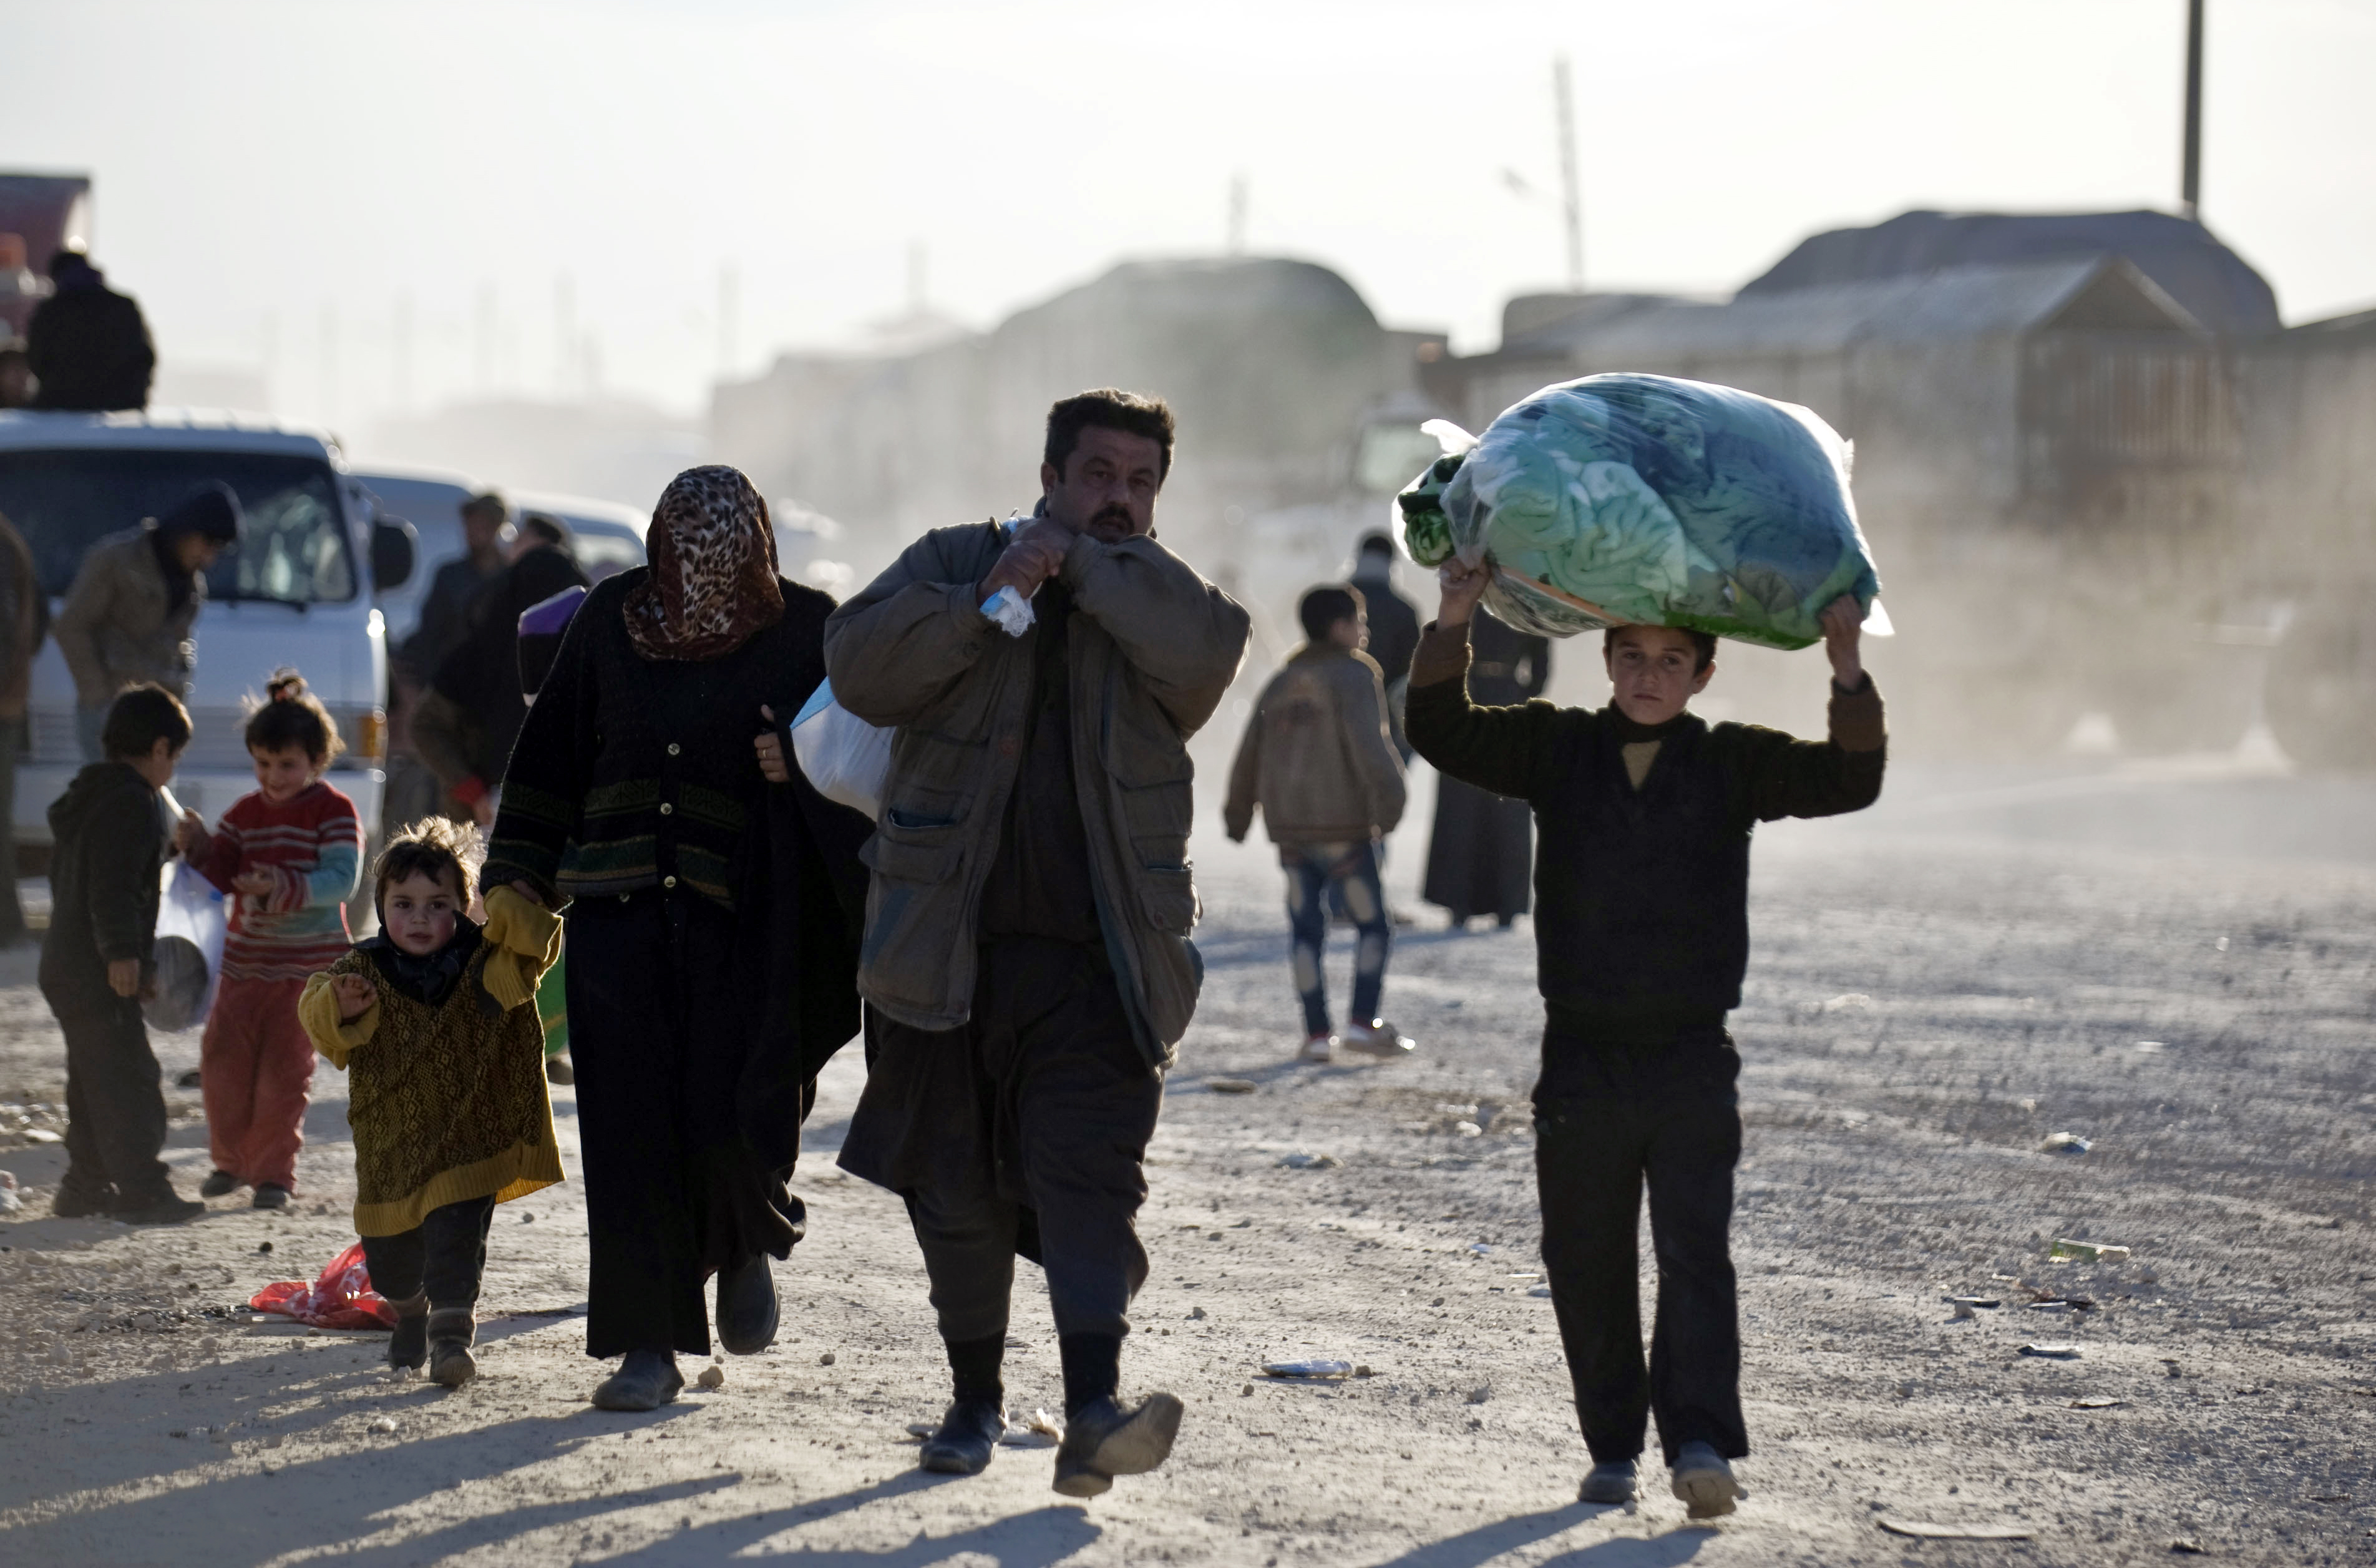 The Syrian Refugee Emergency: Implications for State Security and the International Humanitarian System